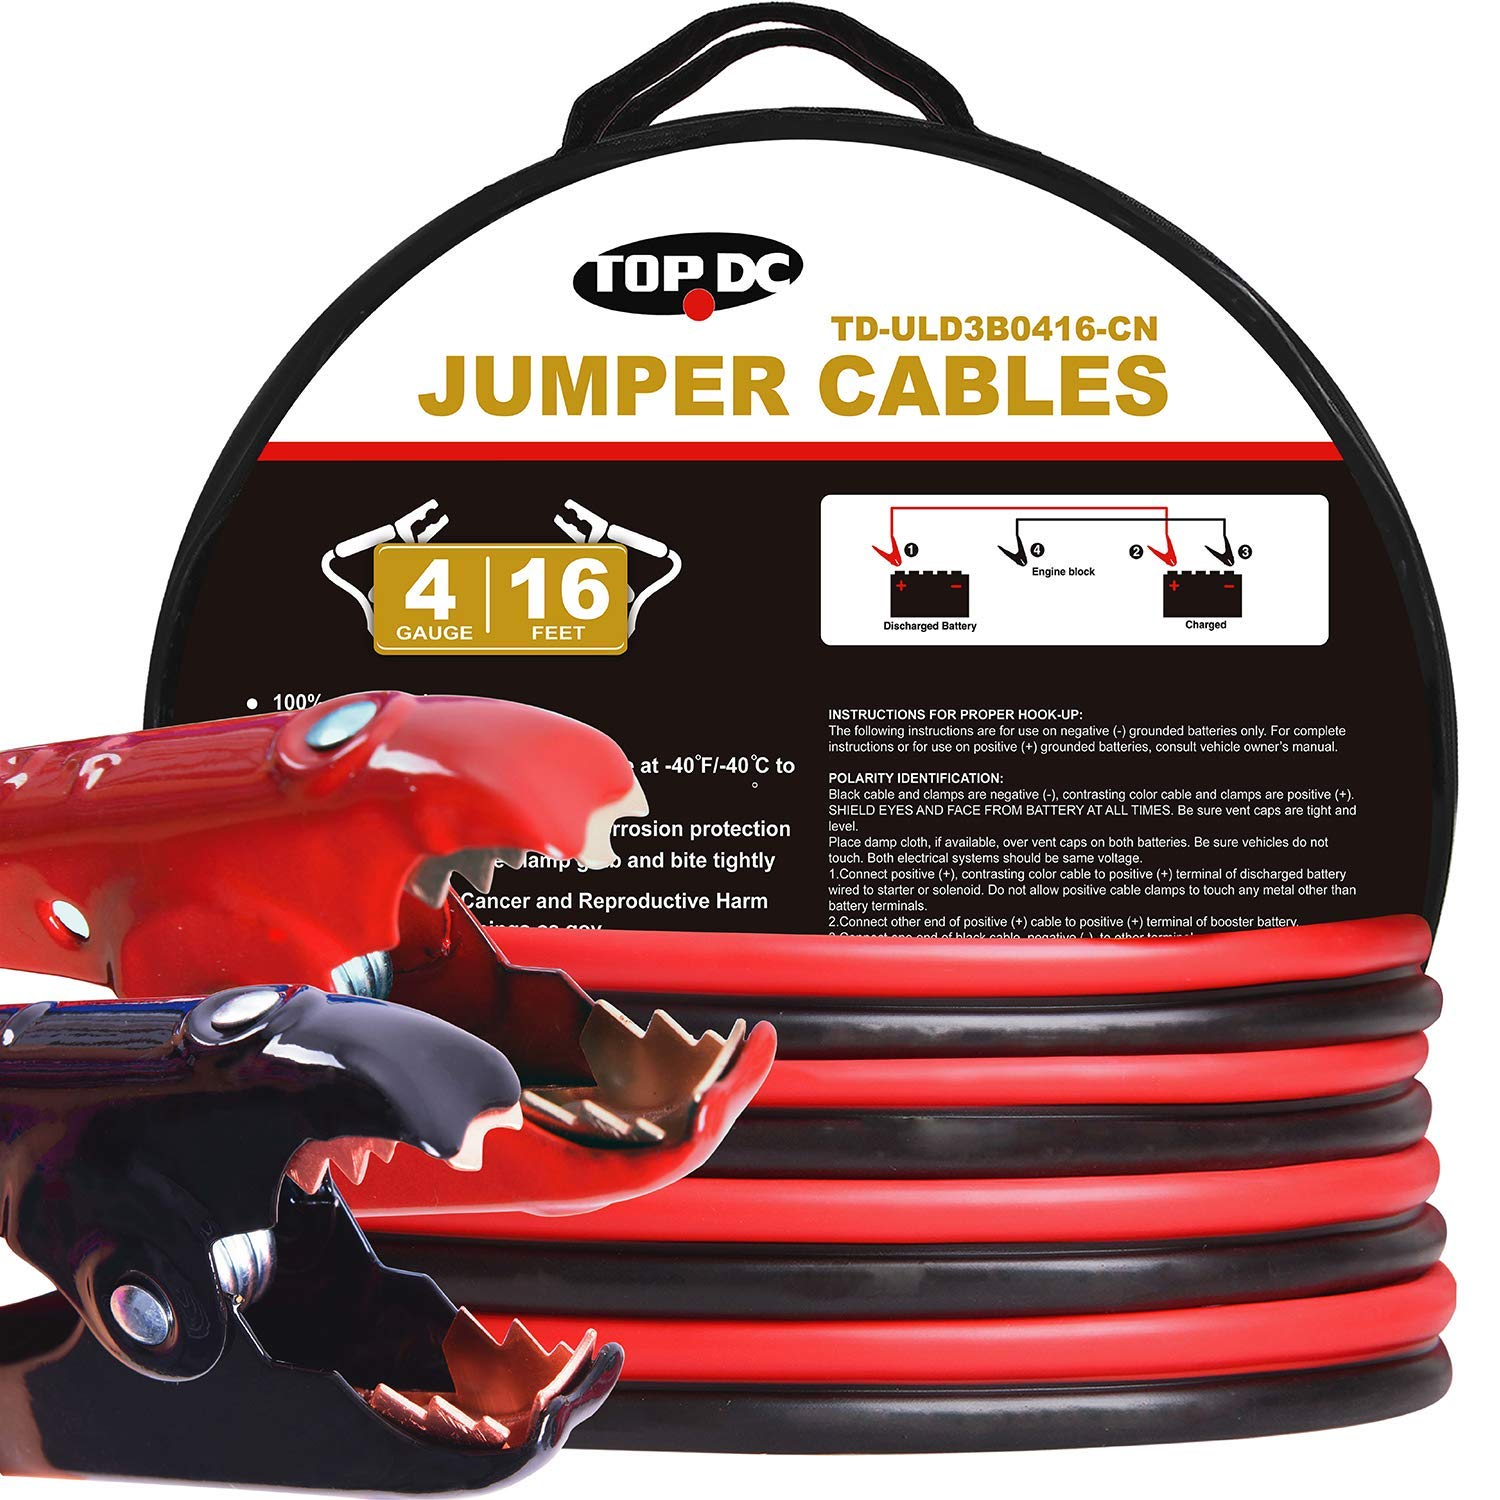 TOPDC 100% Copper Jumper Cables 4 Gauge 16 Feet 600AMP Heavy Duty Booster Cables with Carry Bag and Safety Gloves (4AWG x 16Ft) by TOPDC